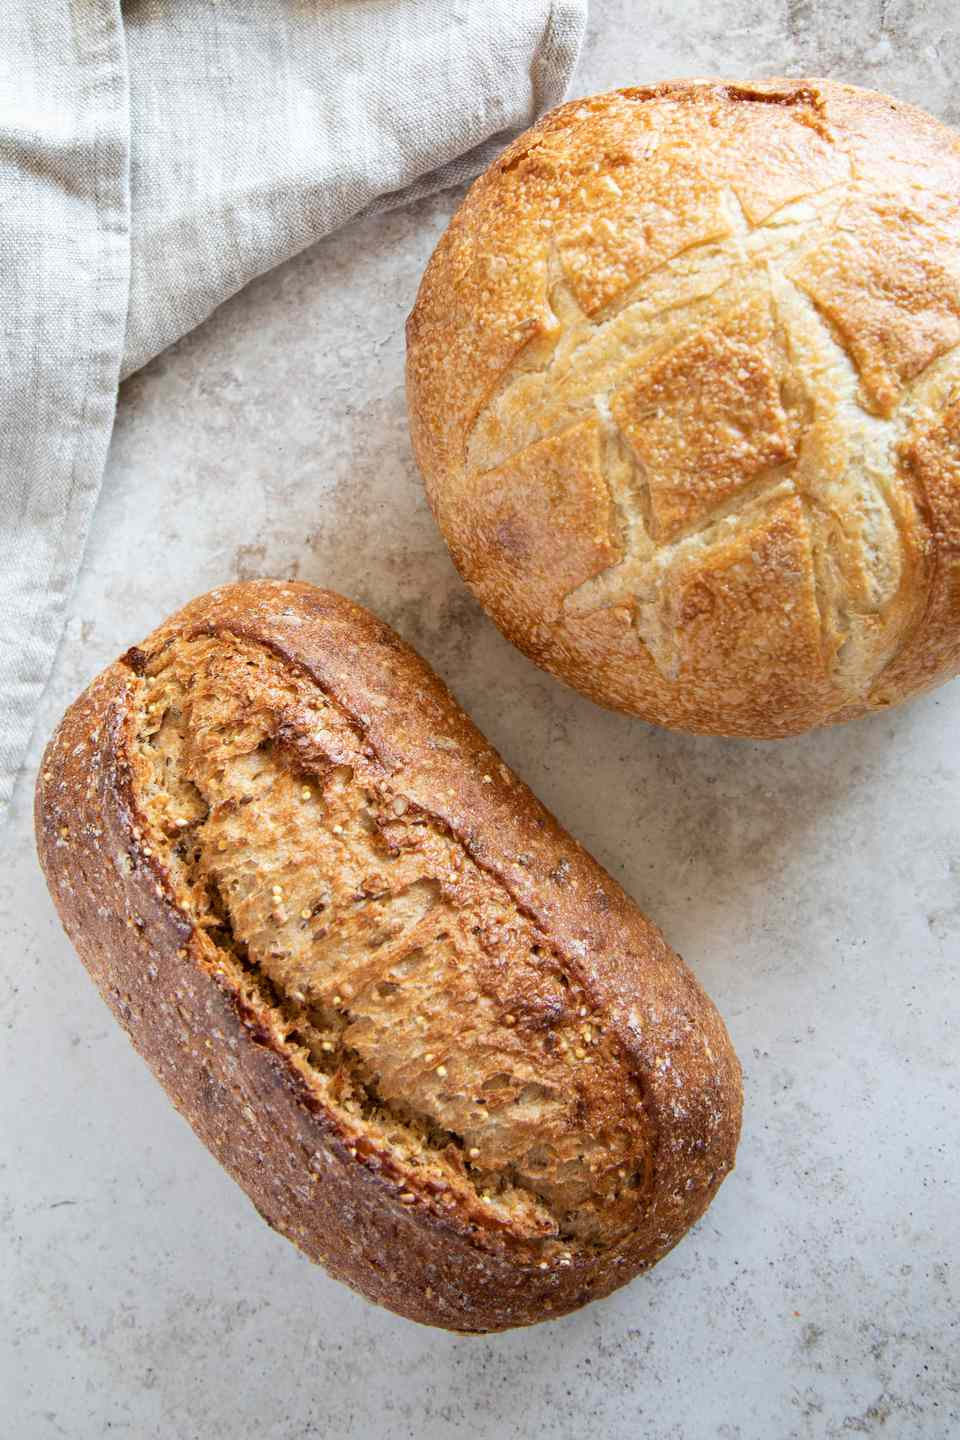 Two artisan loaves of bread on marbled surface